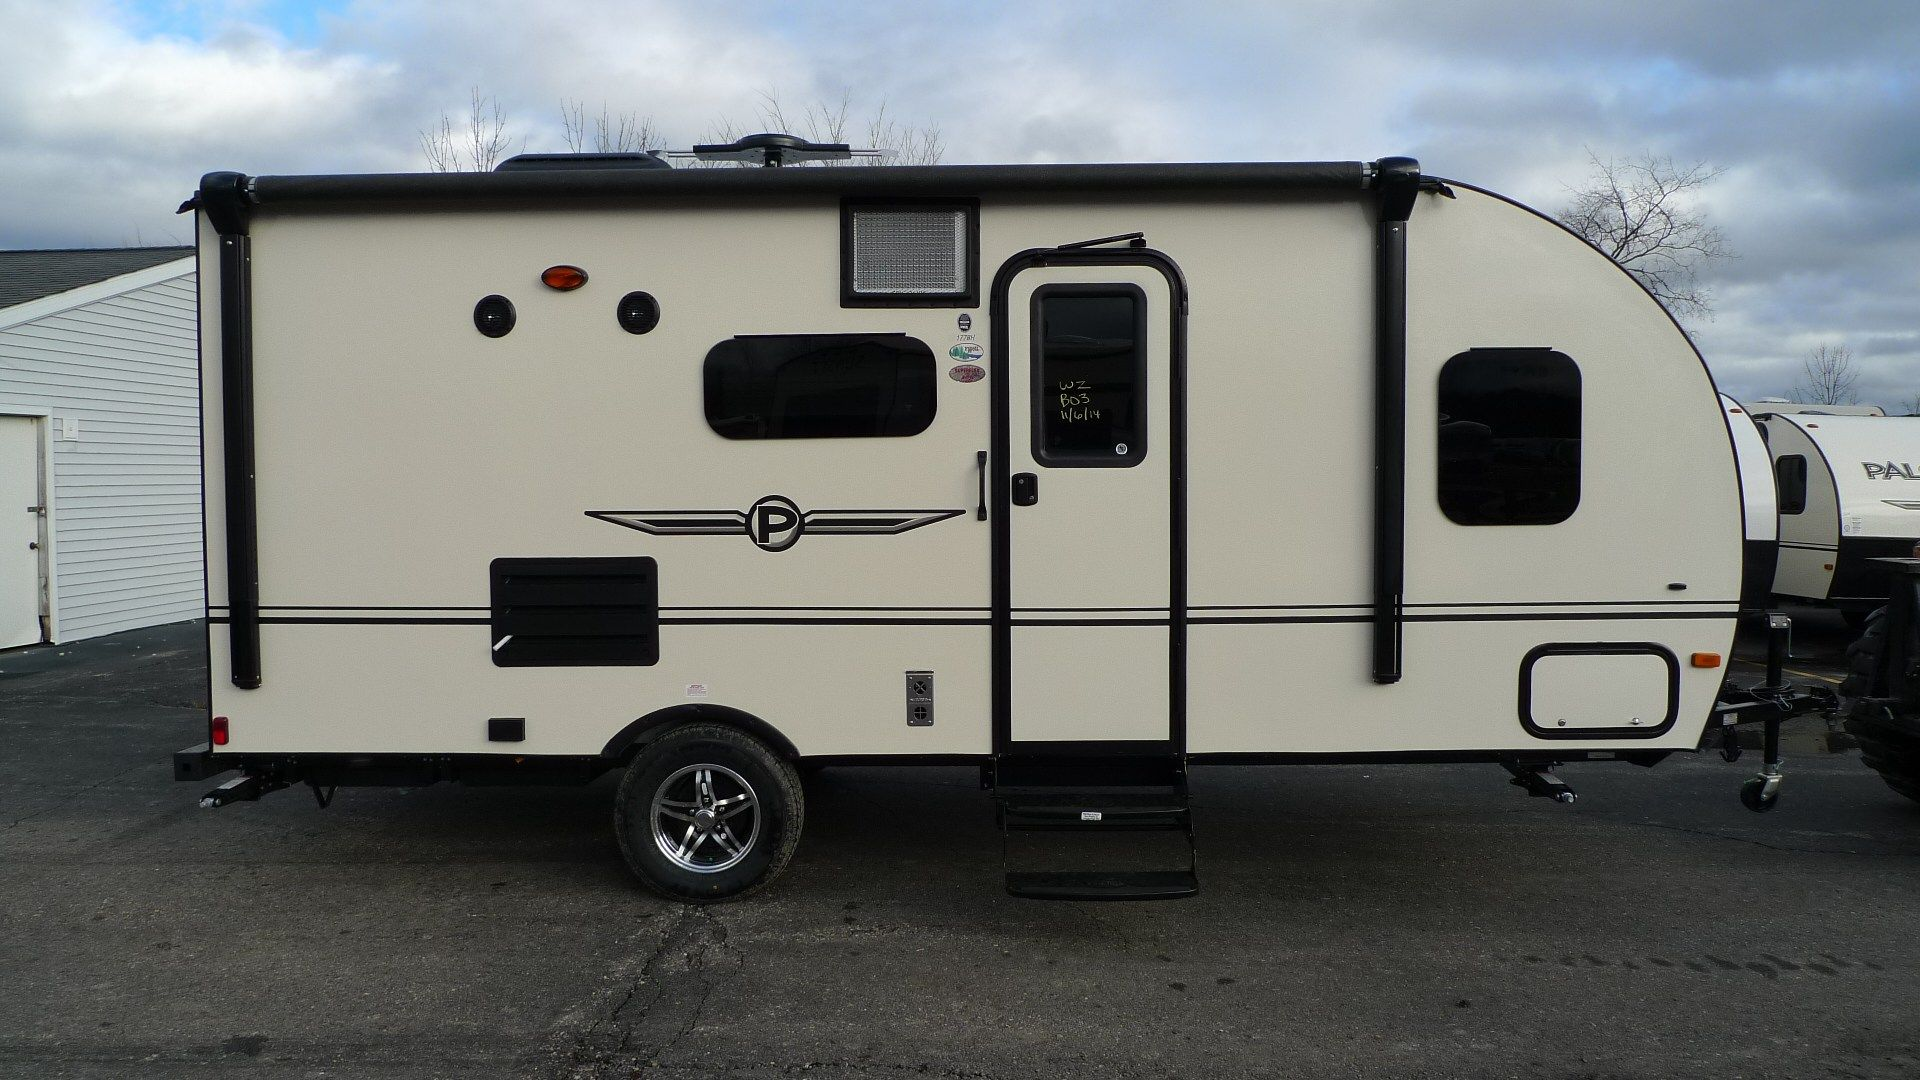 Your New 2015 PaloMini 177BH Travel Trailer is waiting for you at